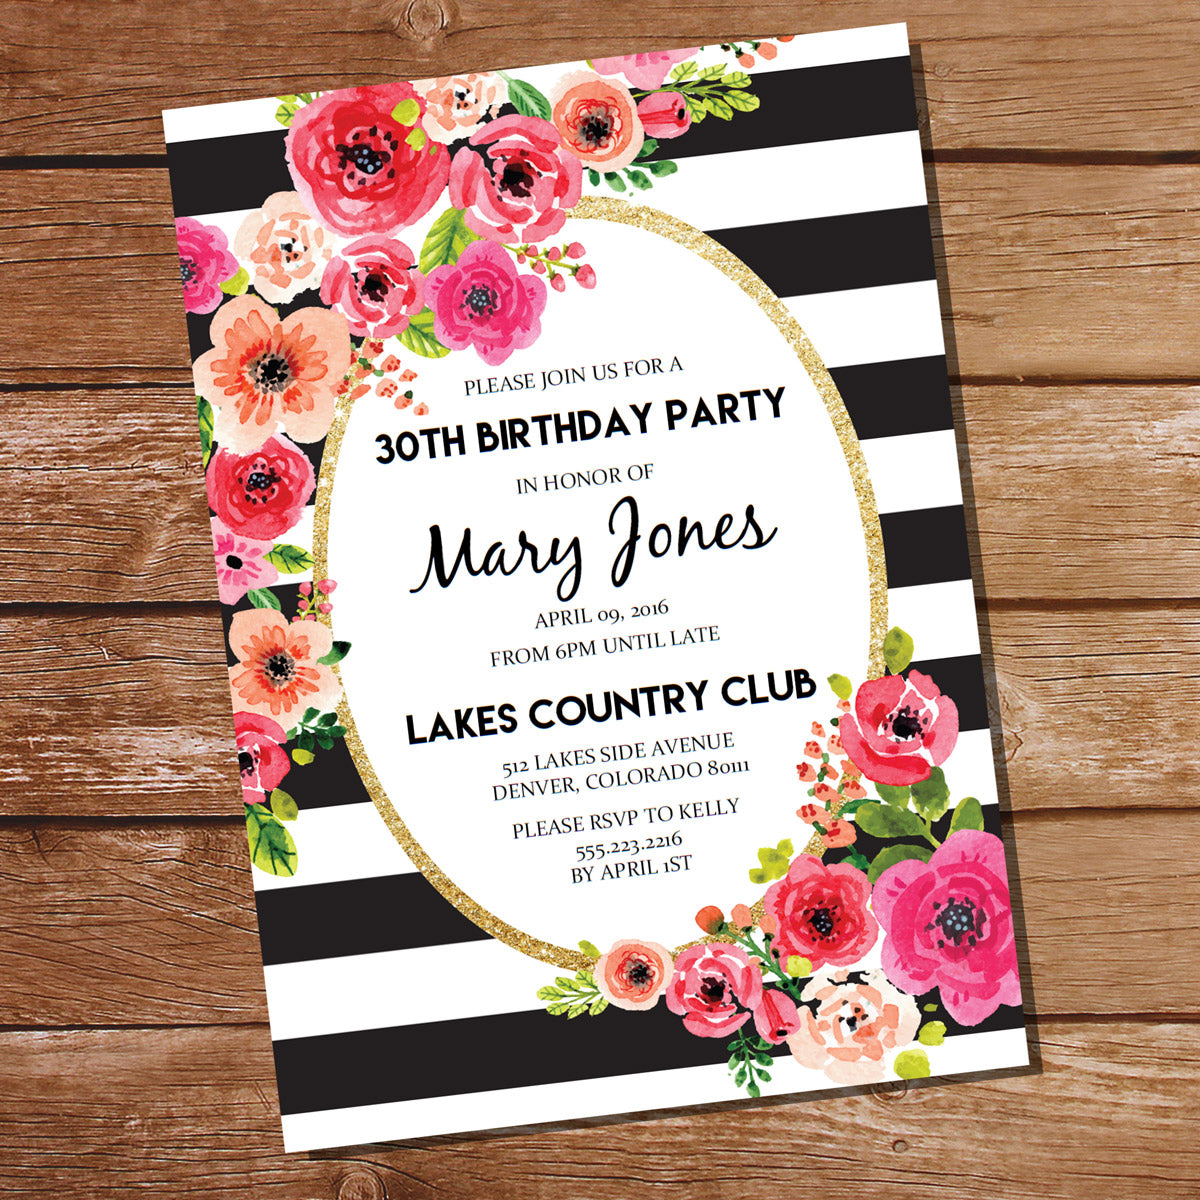 Diy Party Invitation for beautiful invitation sample